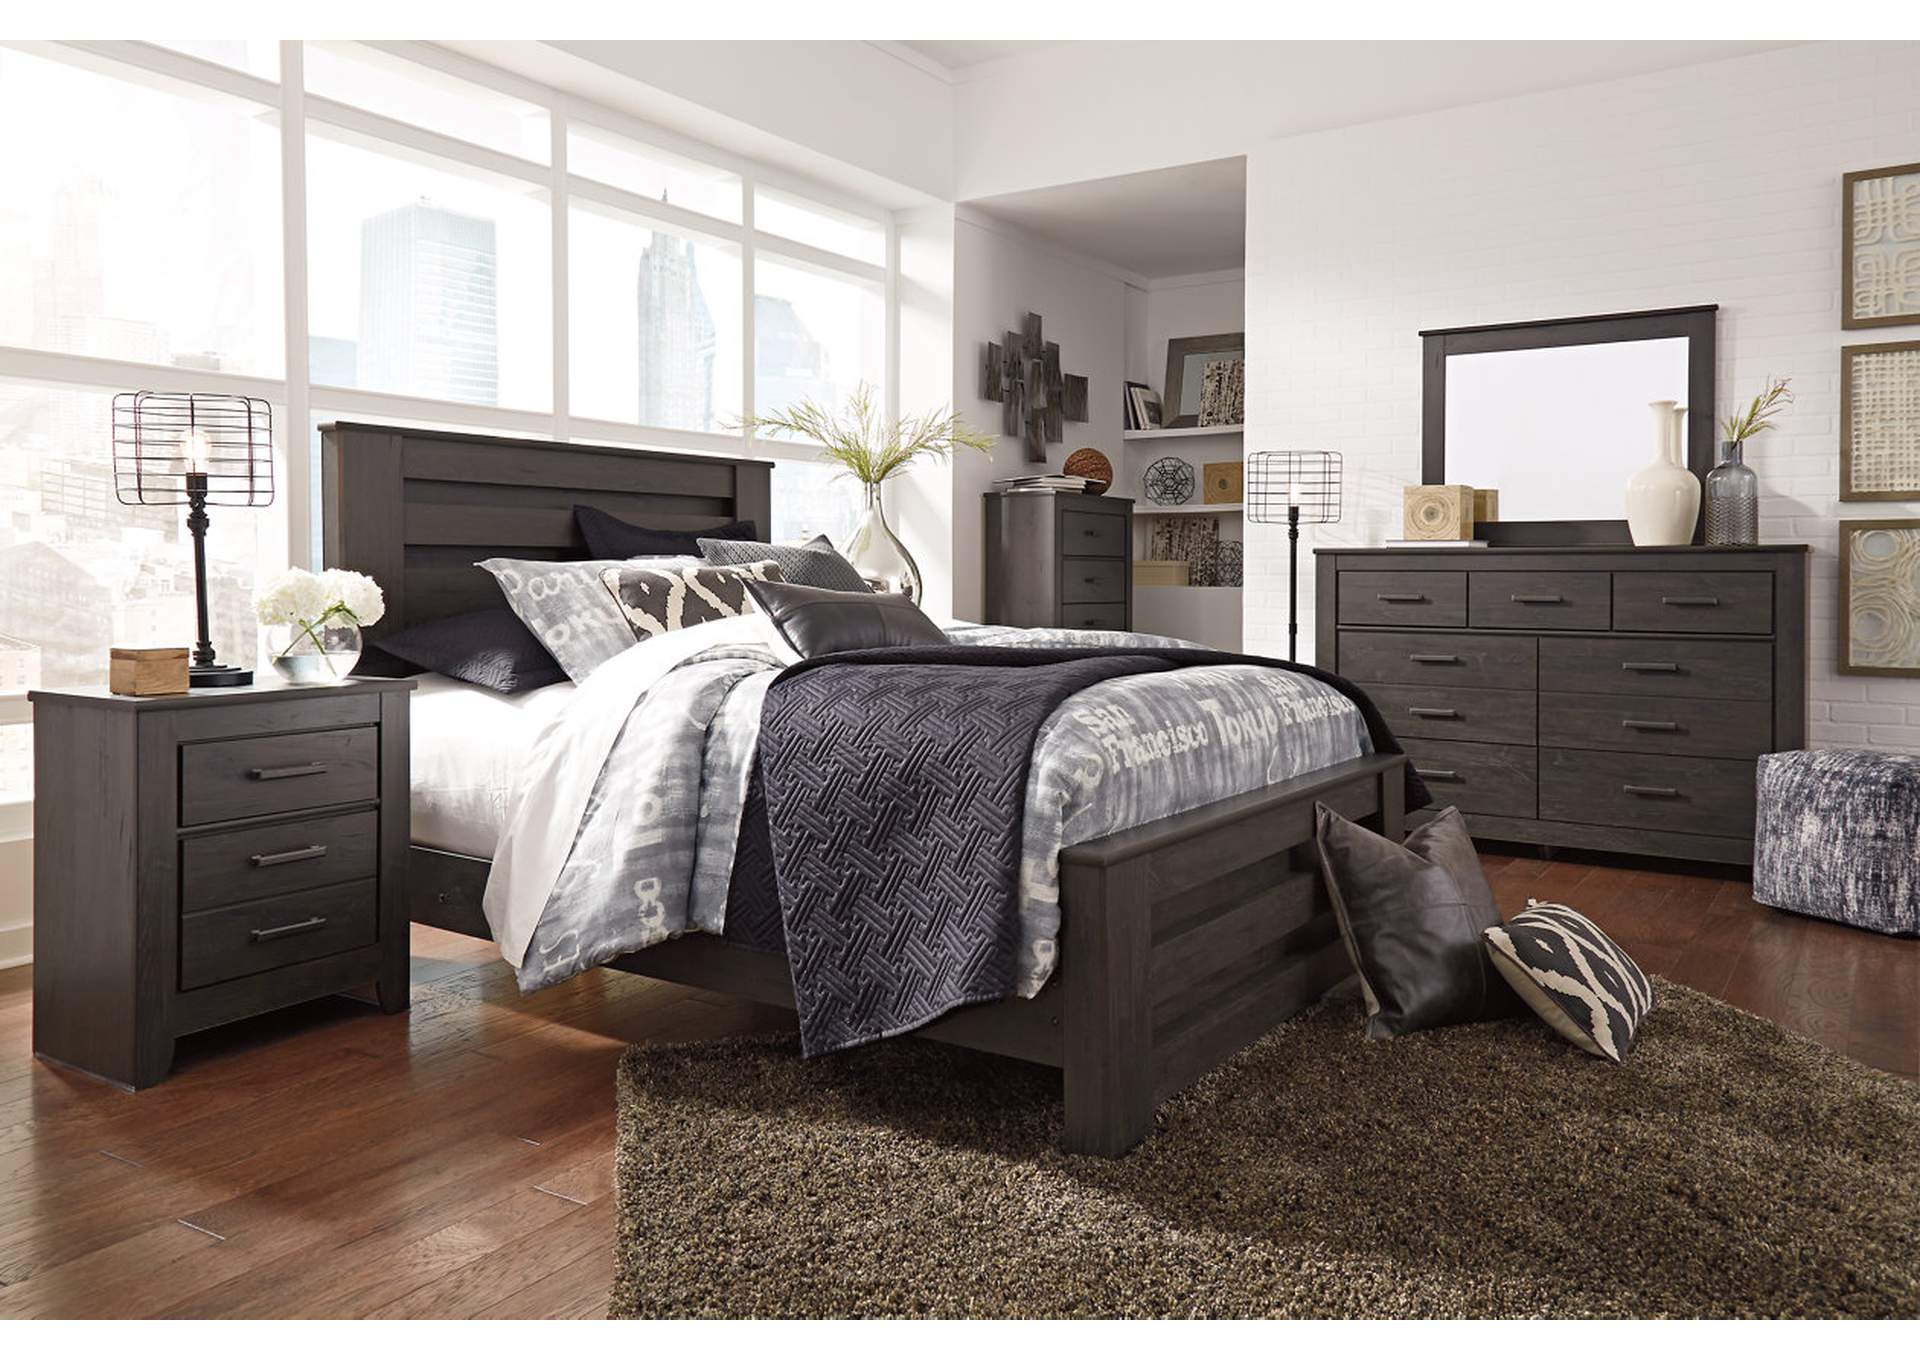 Brinxton Black Queen Panel Bed,Signature Design By Ashley